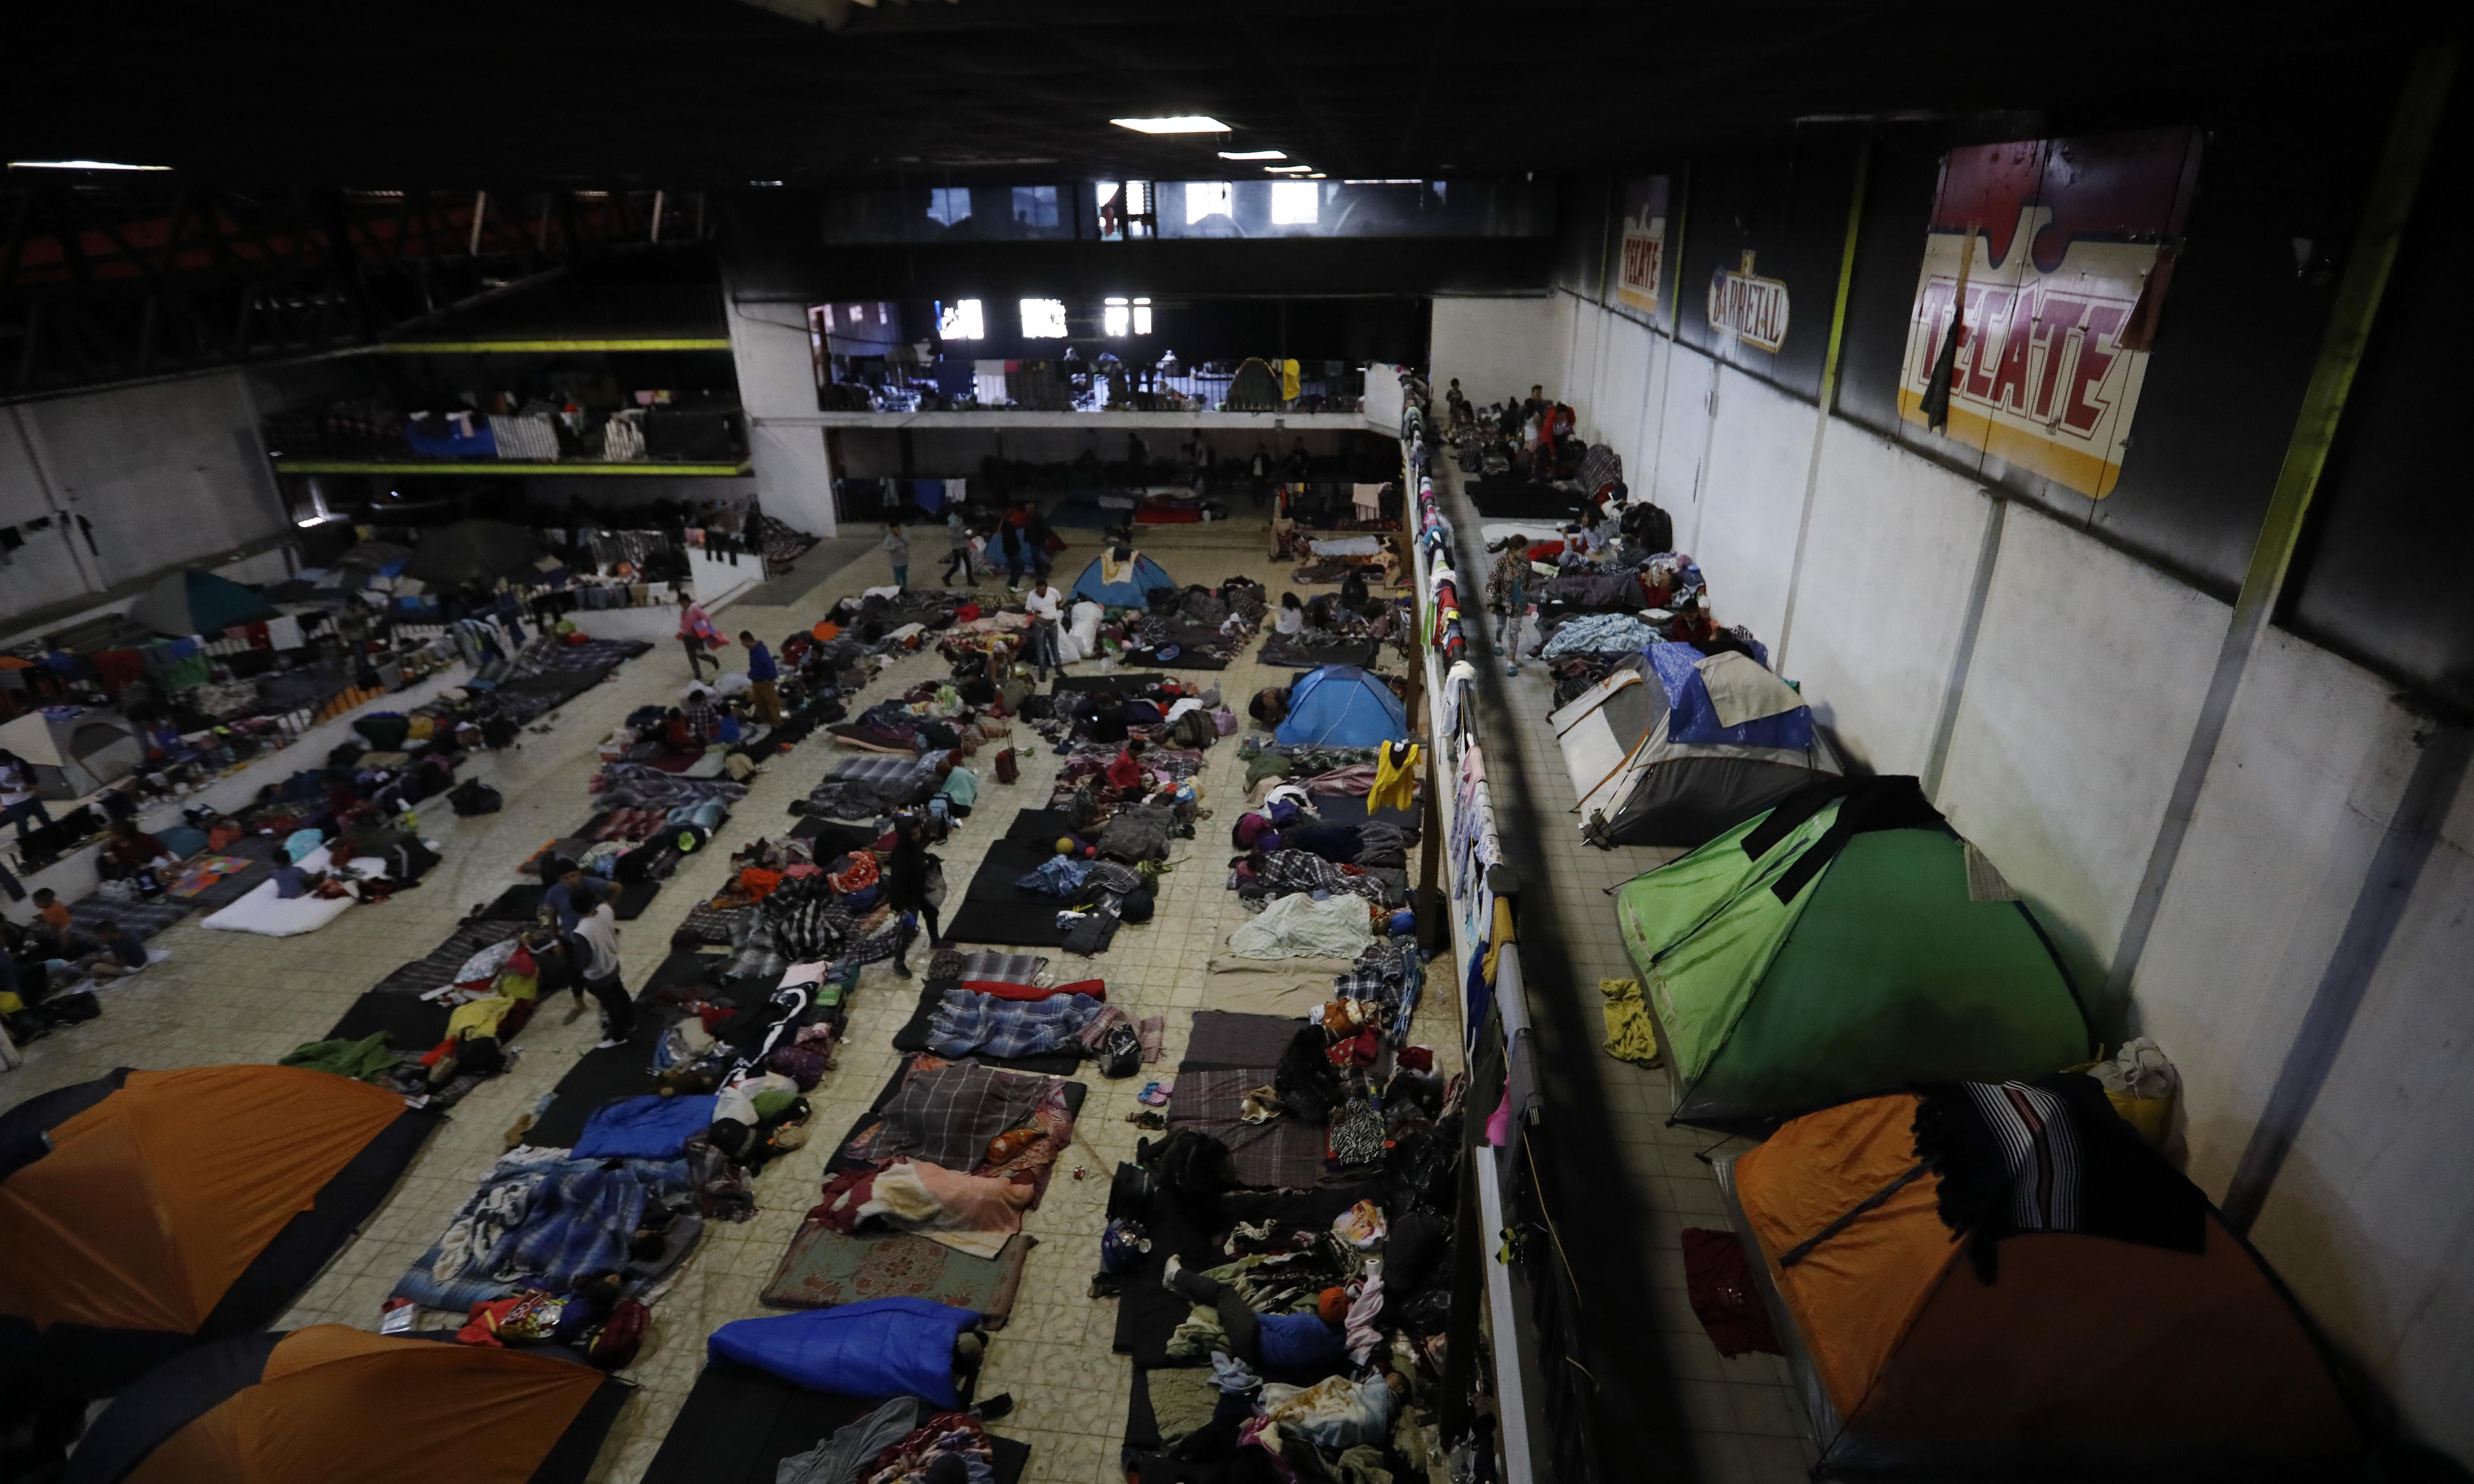 What is forcing thousands of migrants to flee their home countries?